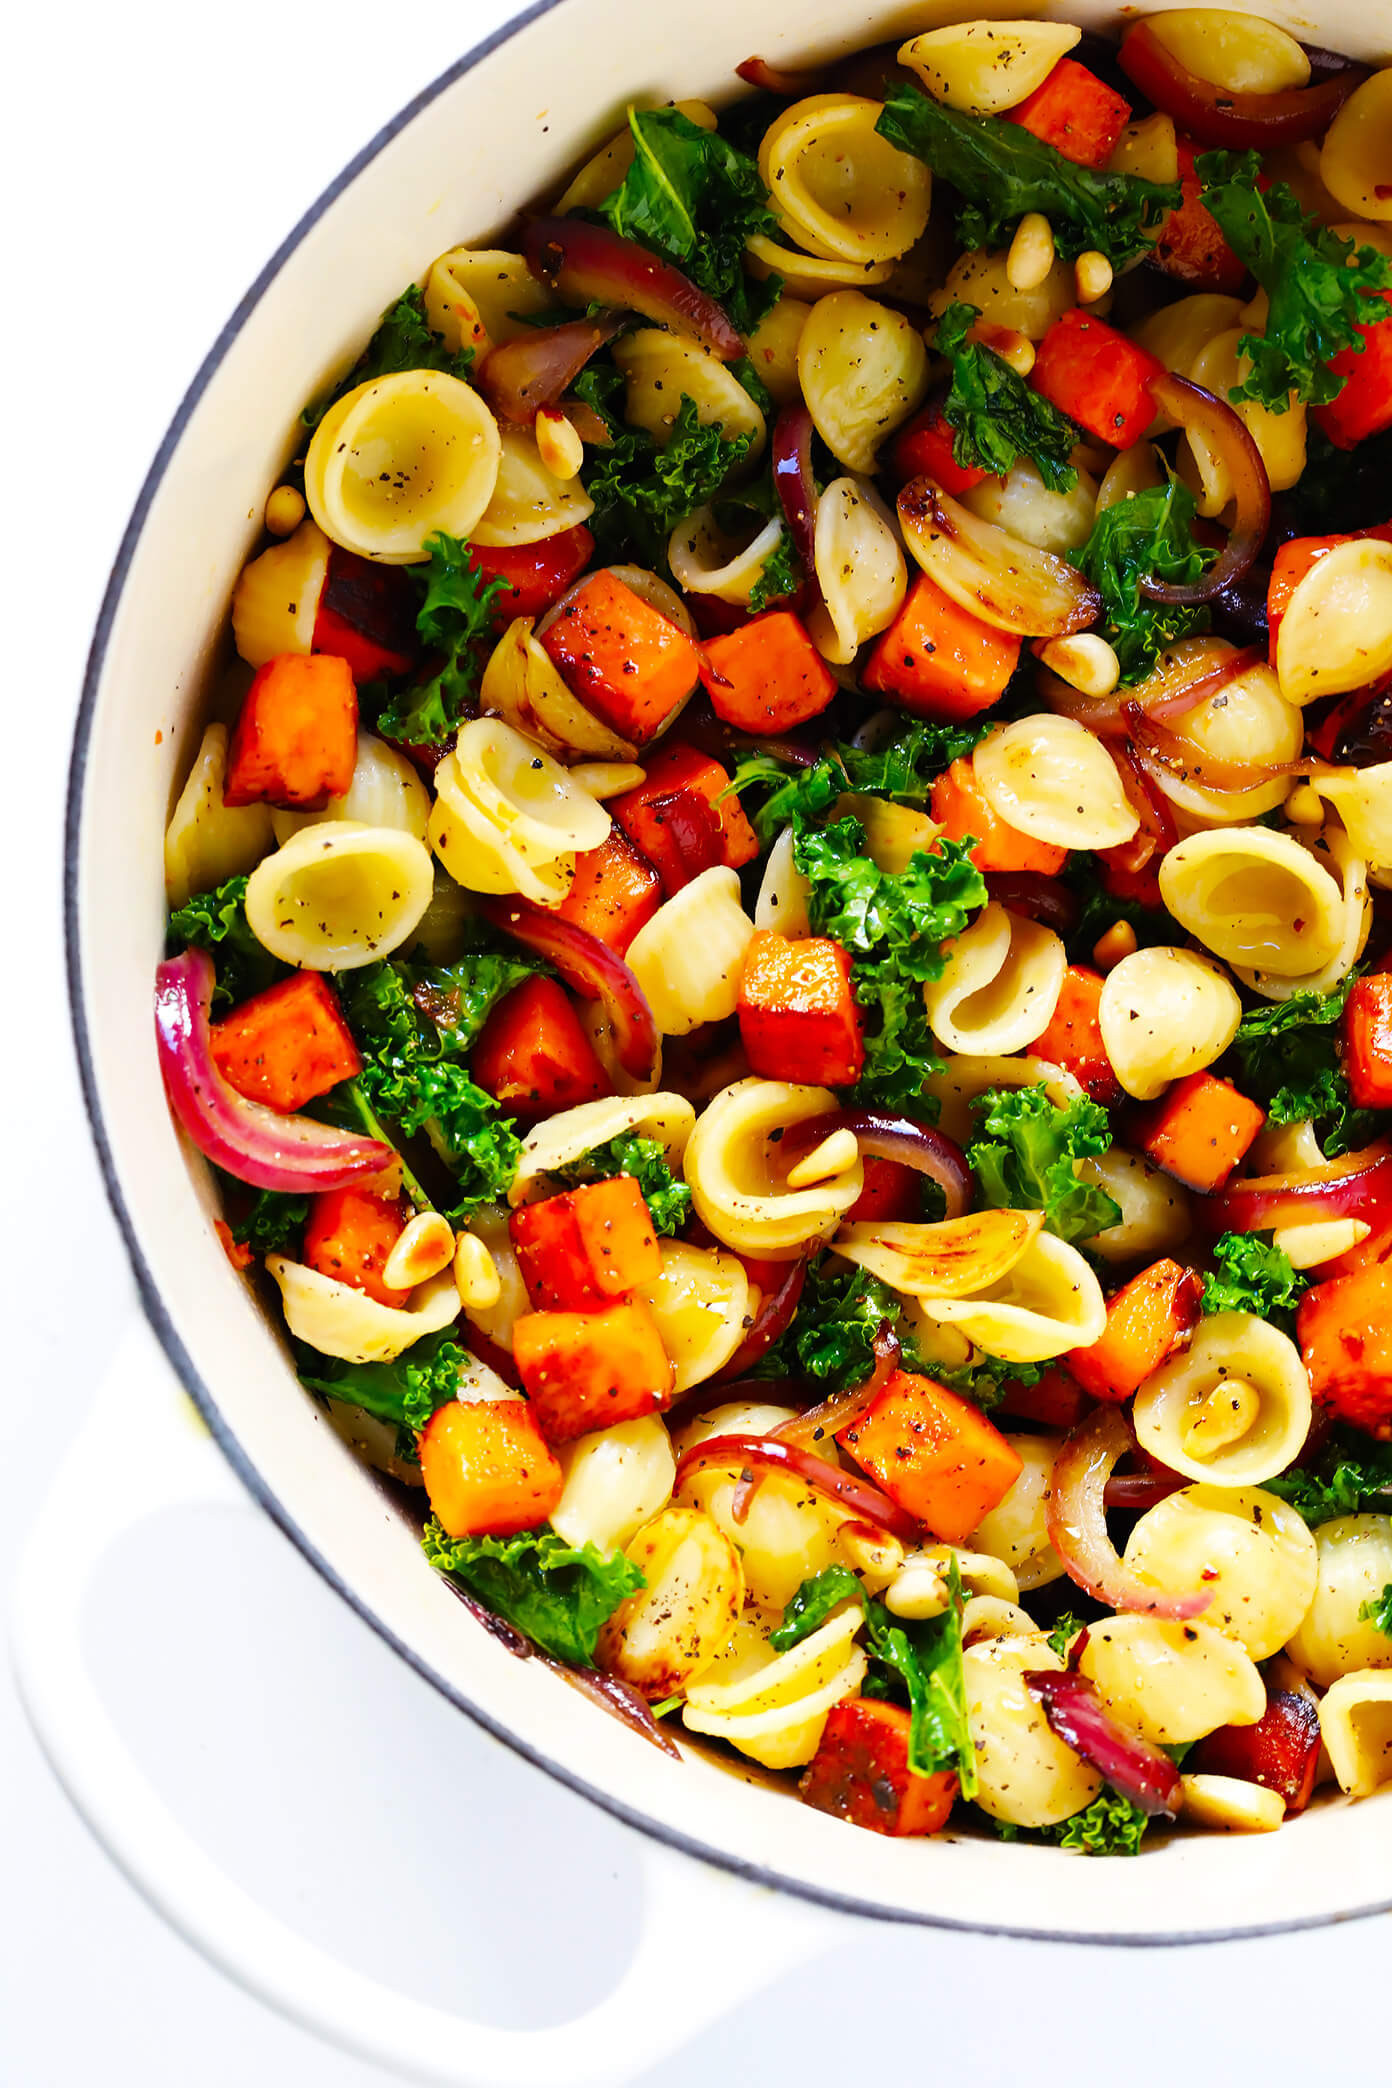 Vegetarian Fall Dinner Recipes  Pasta with Caramelized Sweet Potatoes and Kale